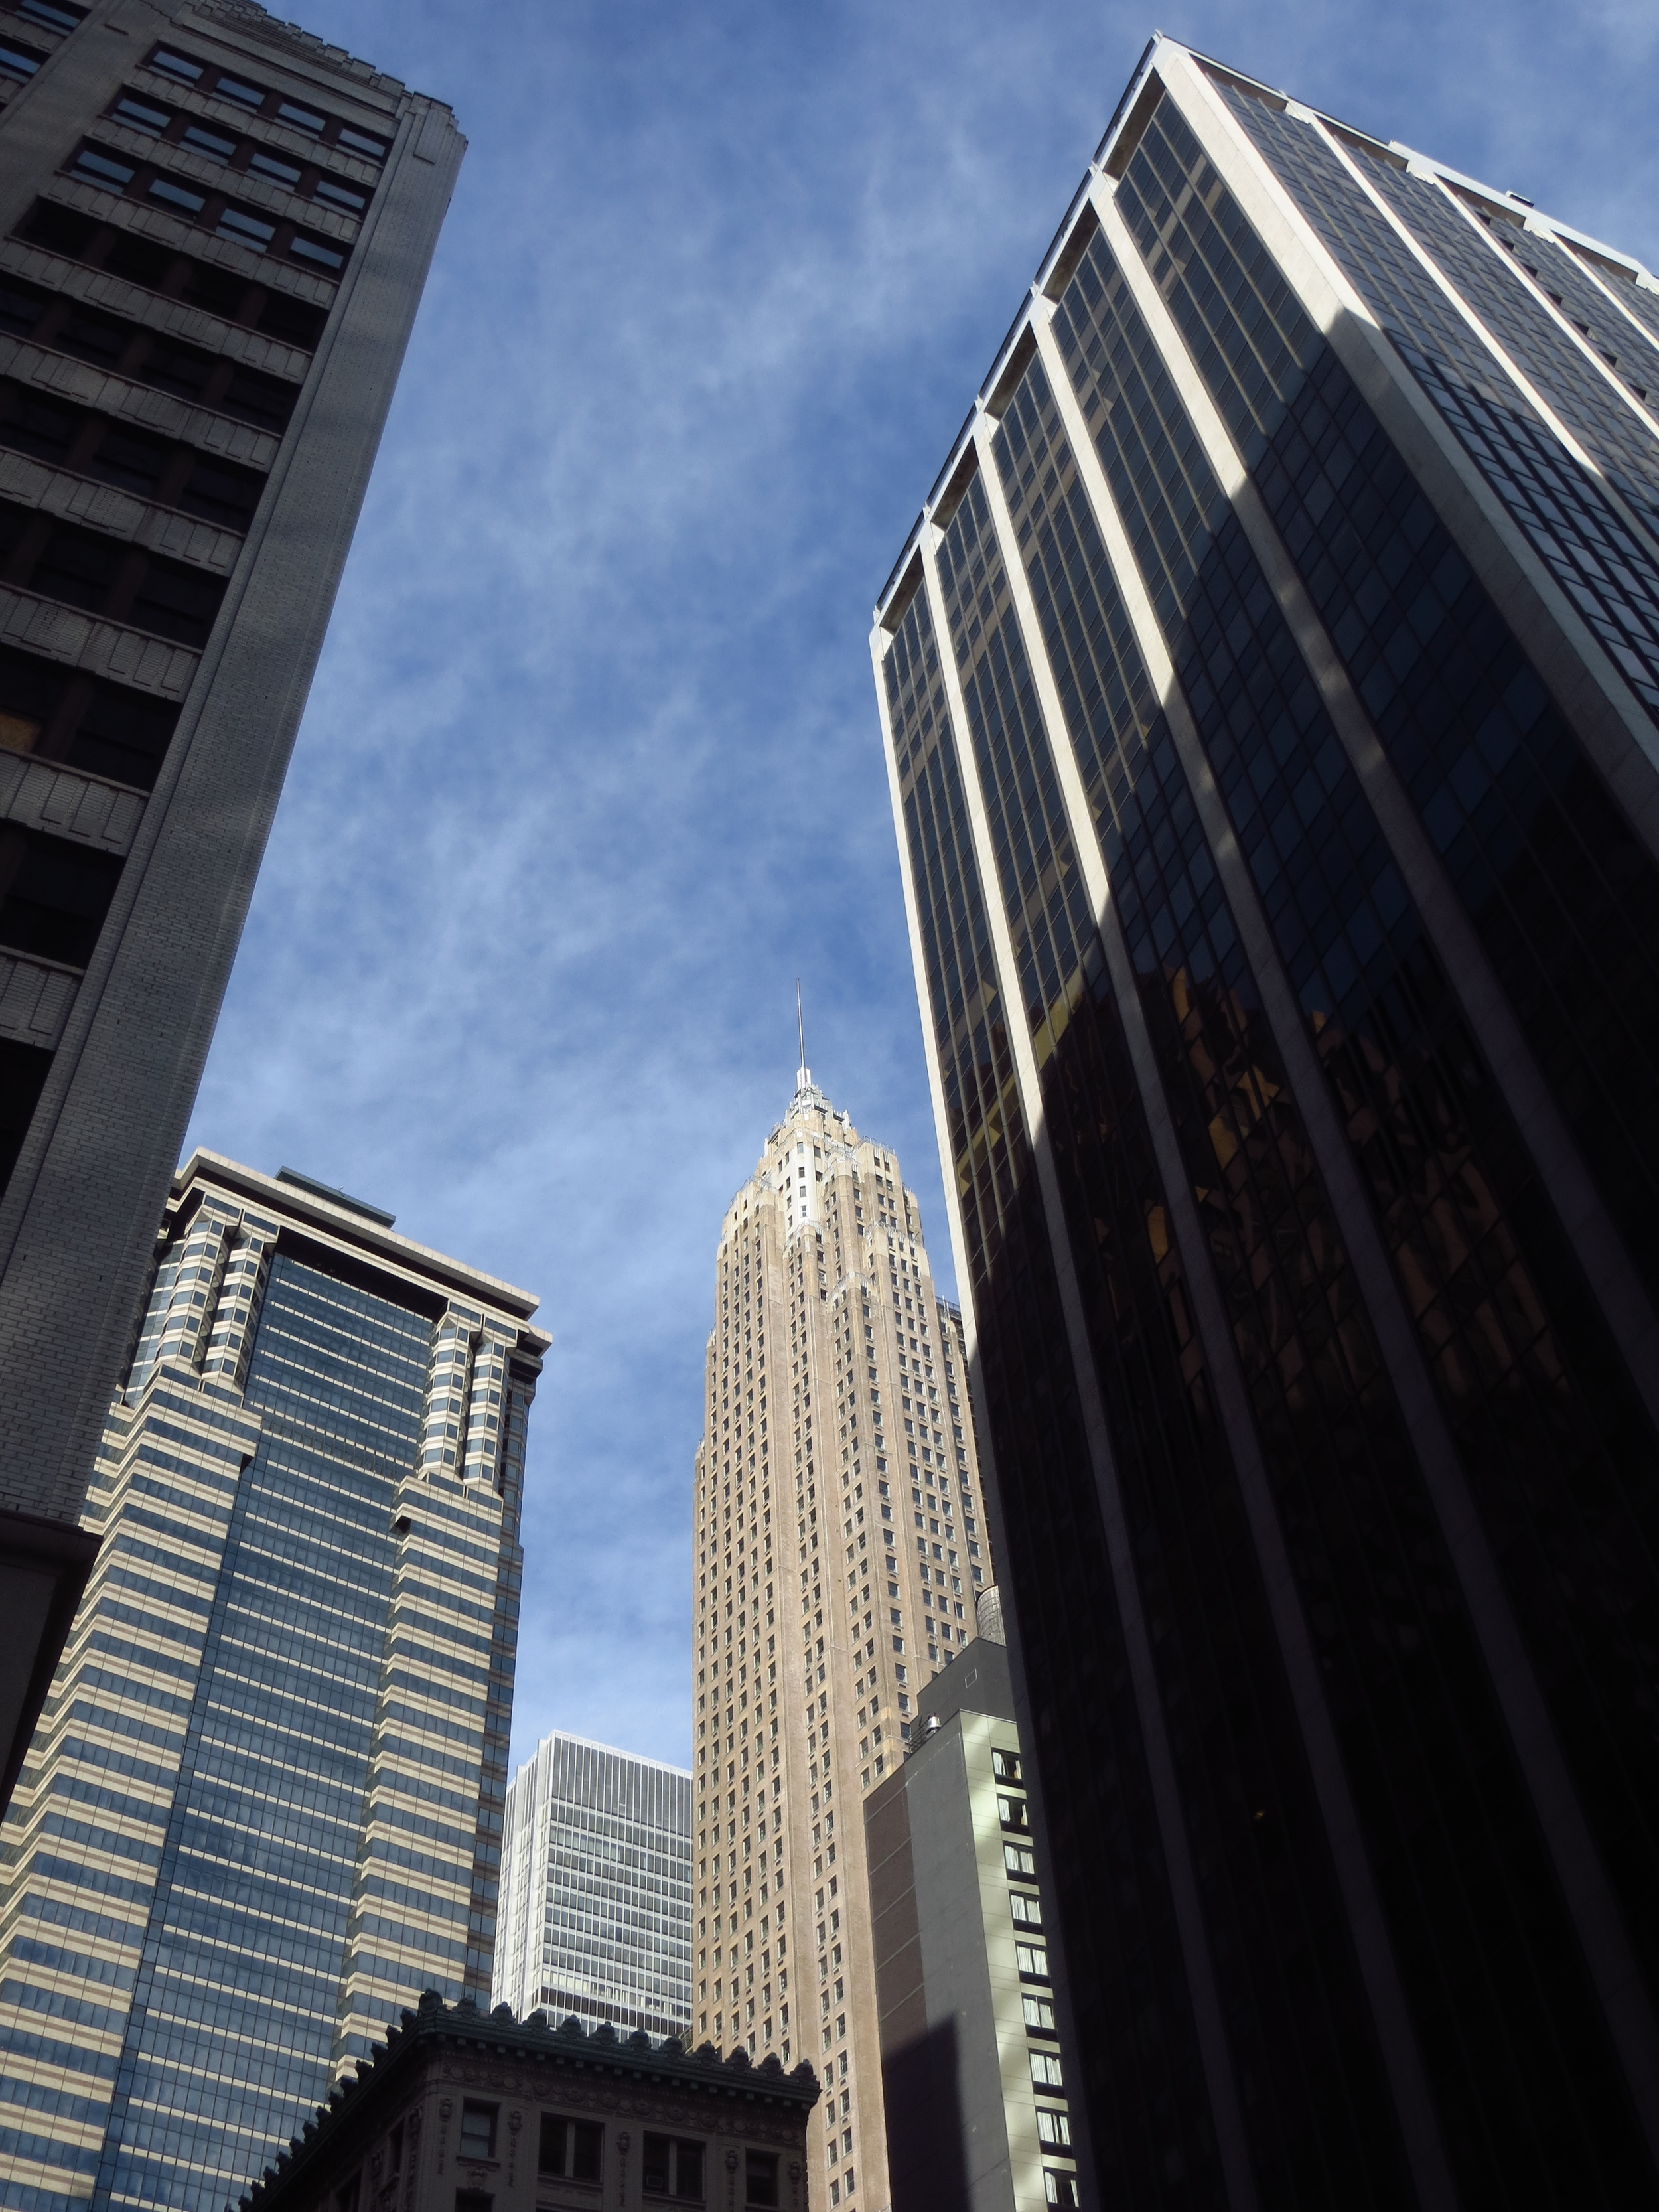 Financial District skyscrapers (70 Pine St. in the center)